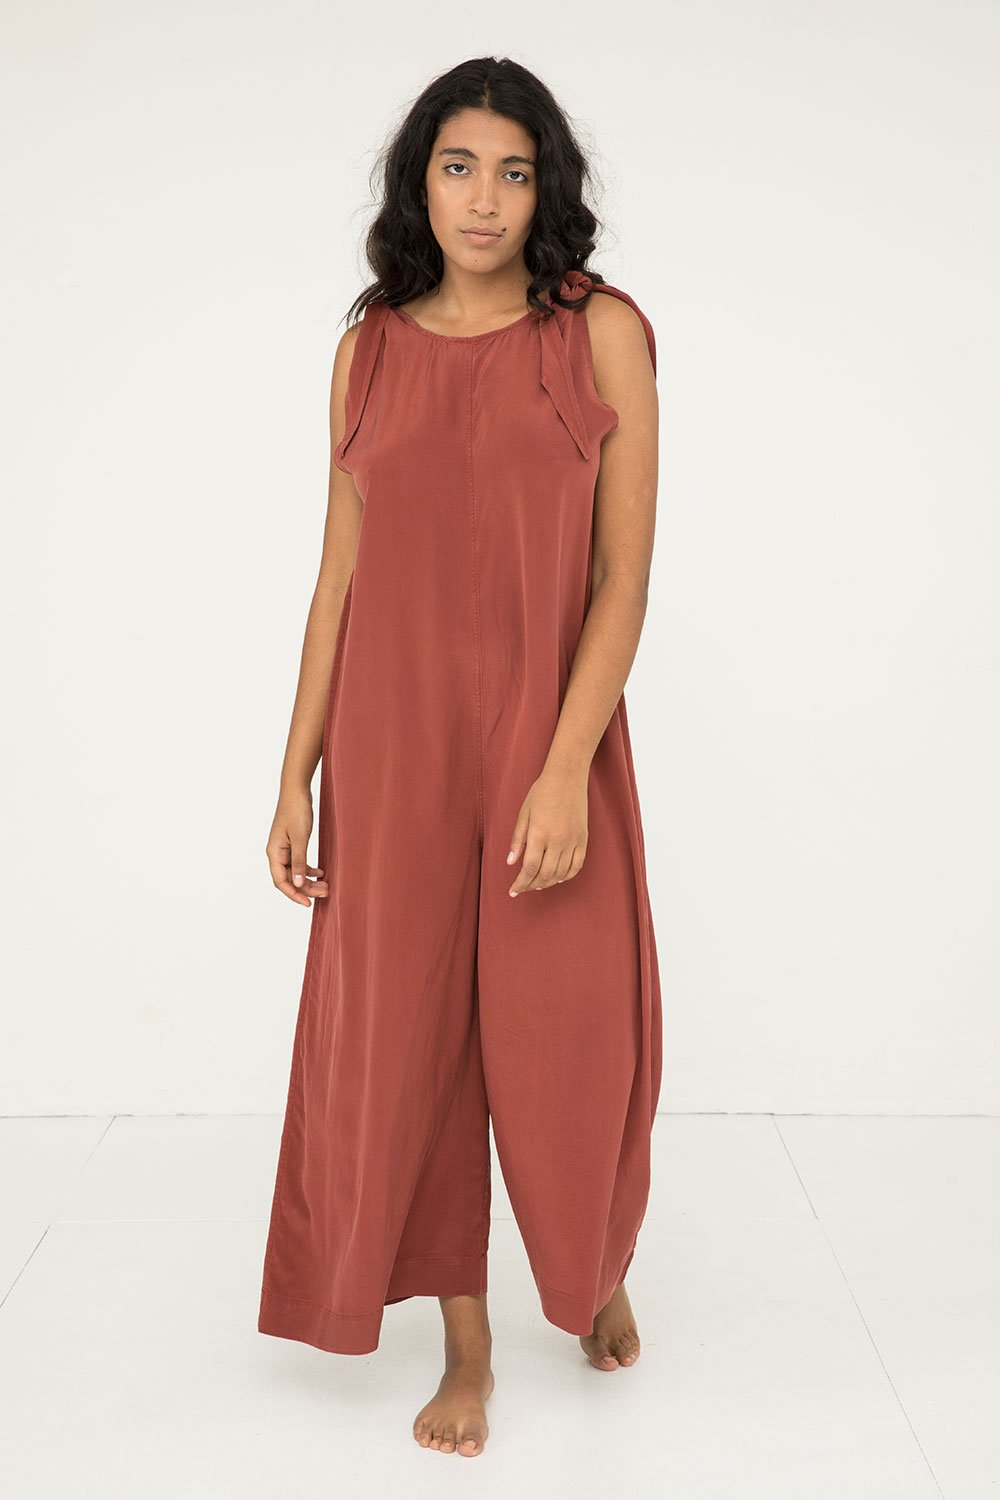 Isadora Tie Jumpsuit in Silk Crepe Rust - Nouri-M Regular